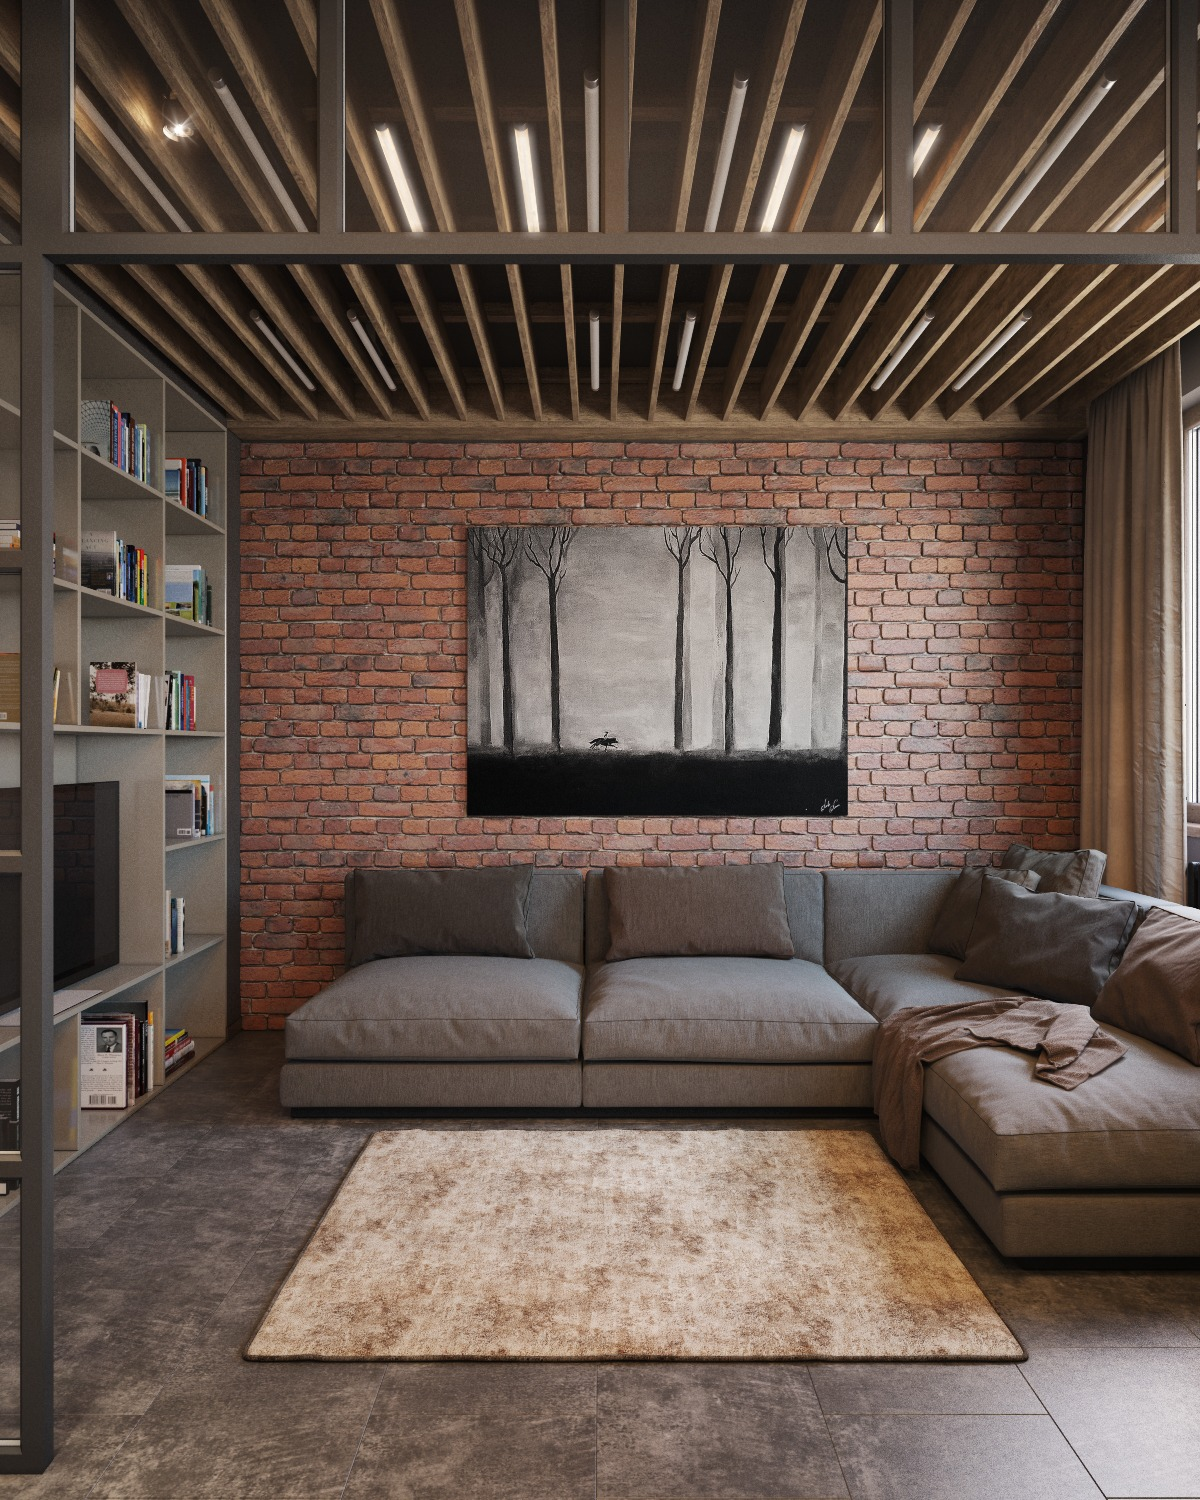 Wood Beam Ceiling With Lights